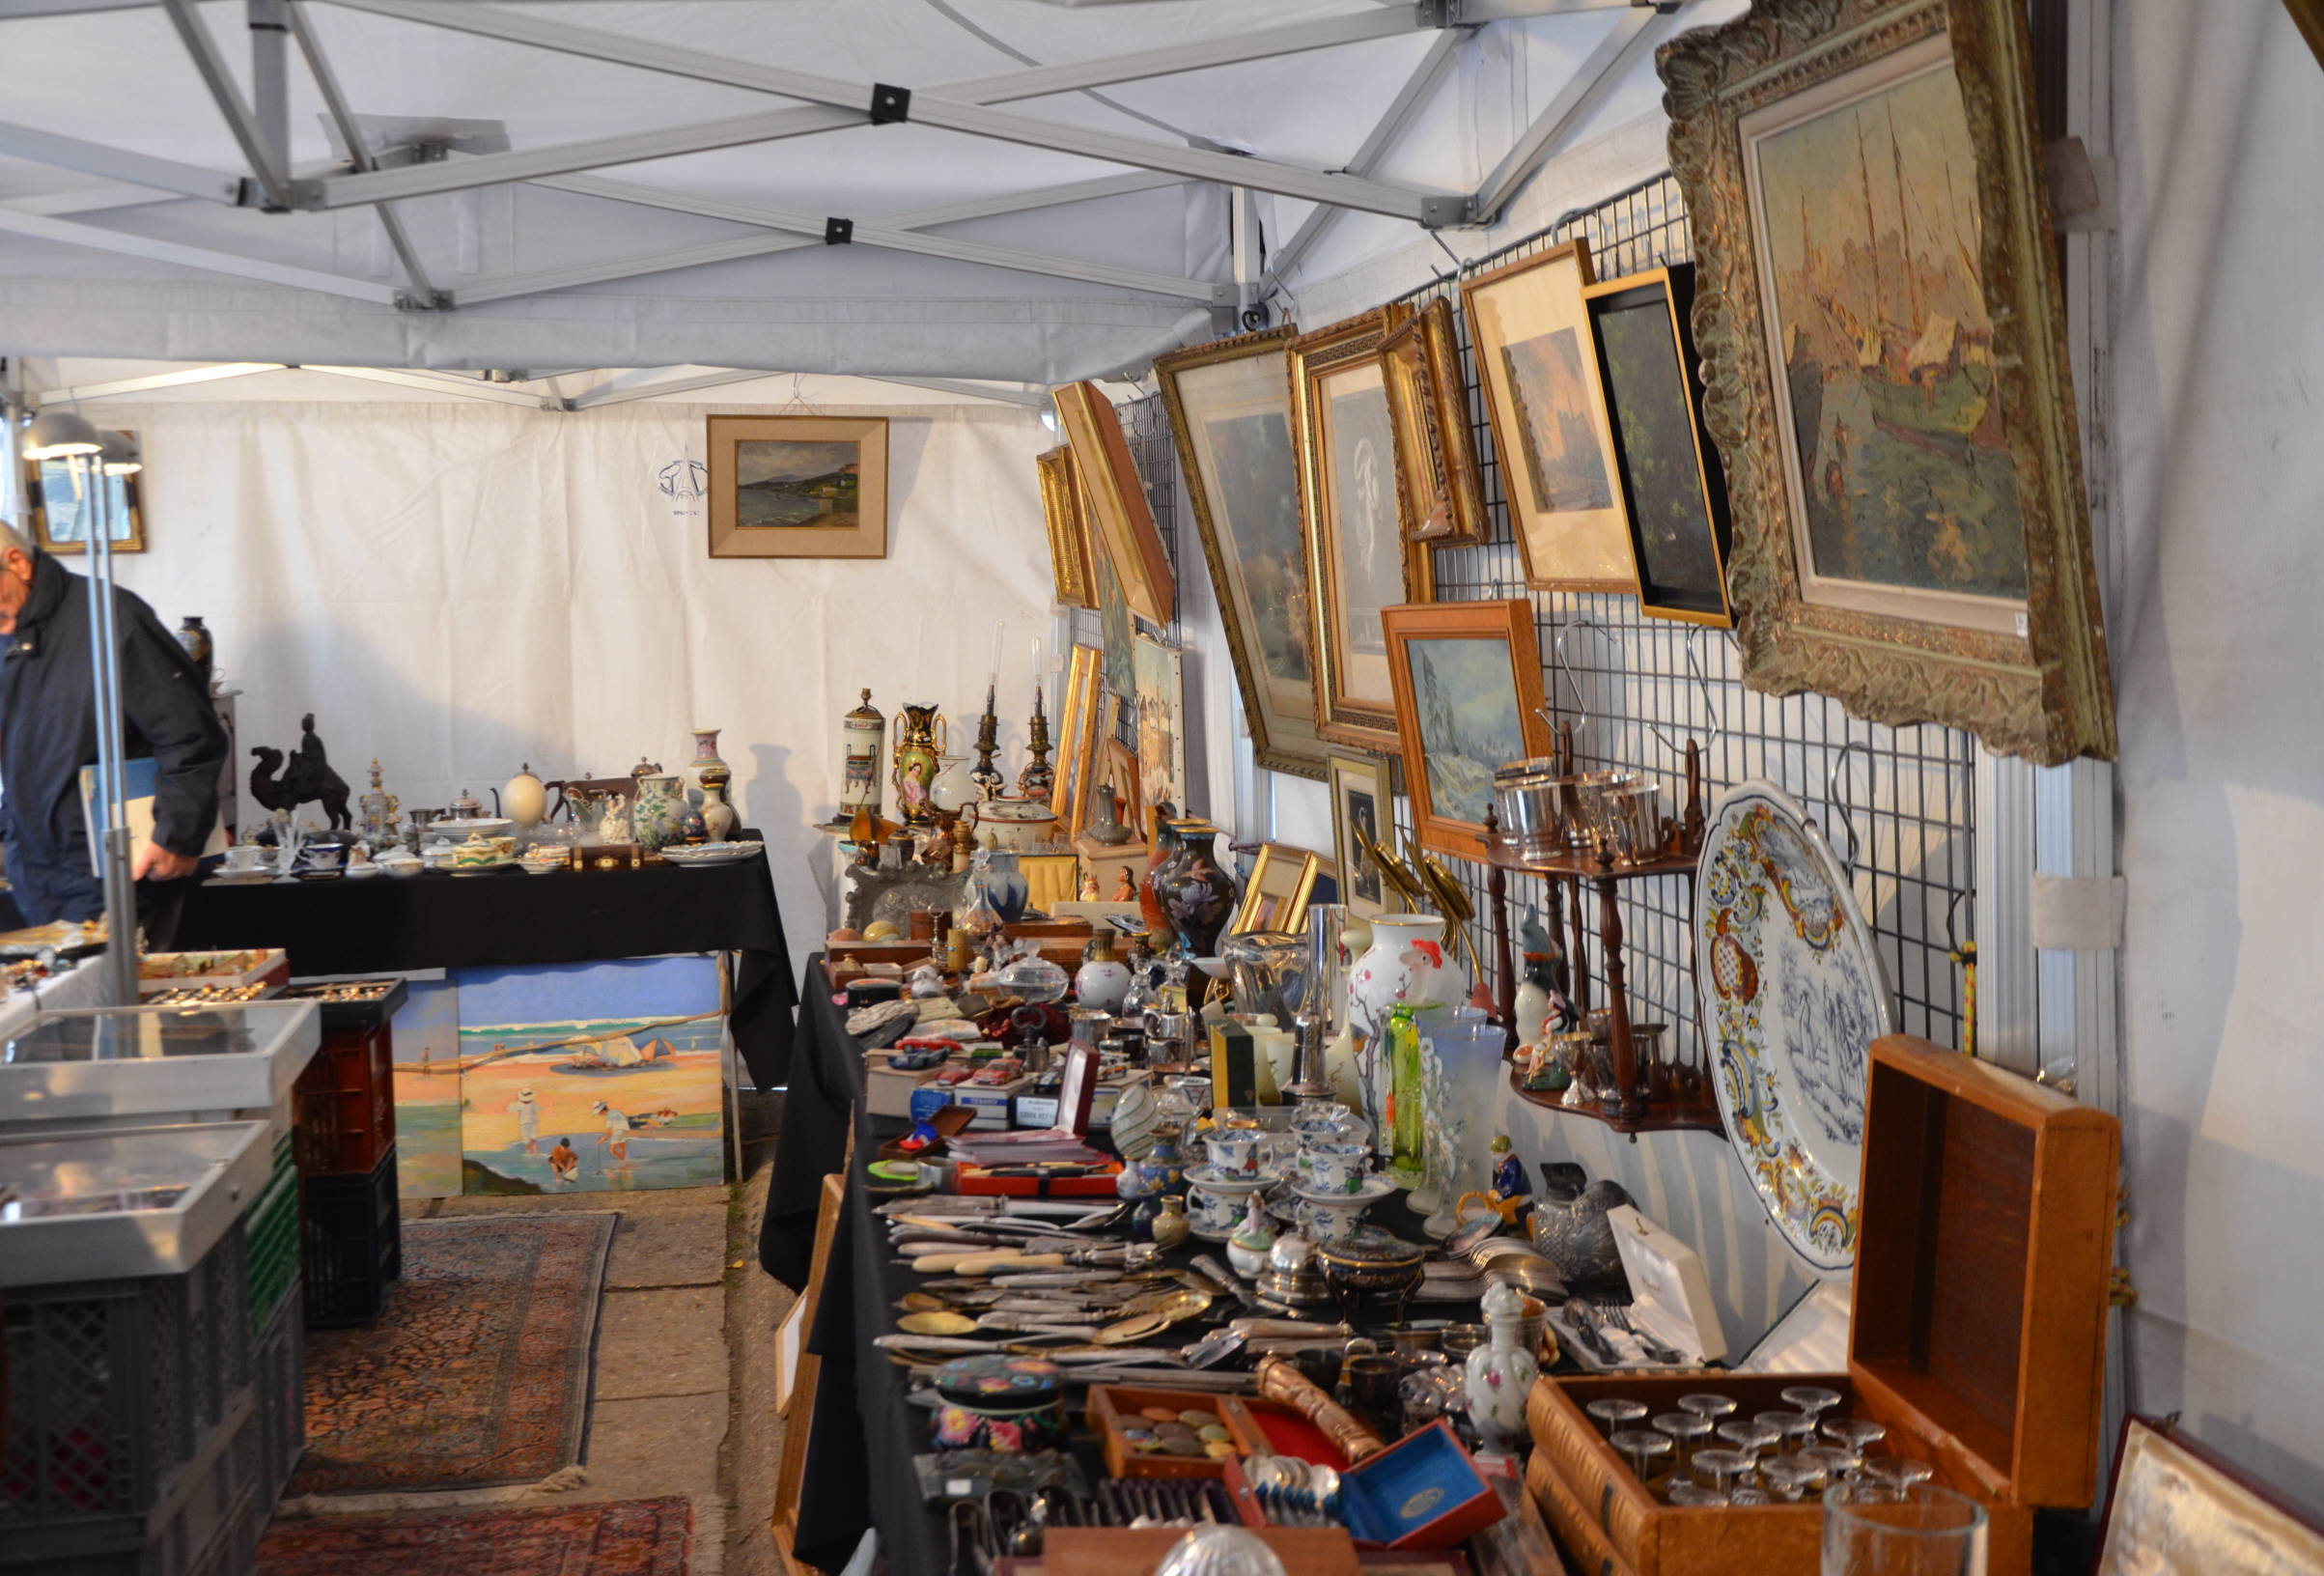 LeTheon-brocanteur-brocante-clerc-8_Paris_75